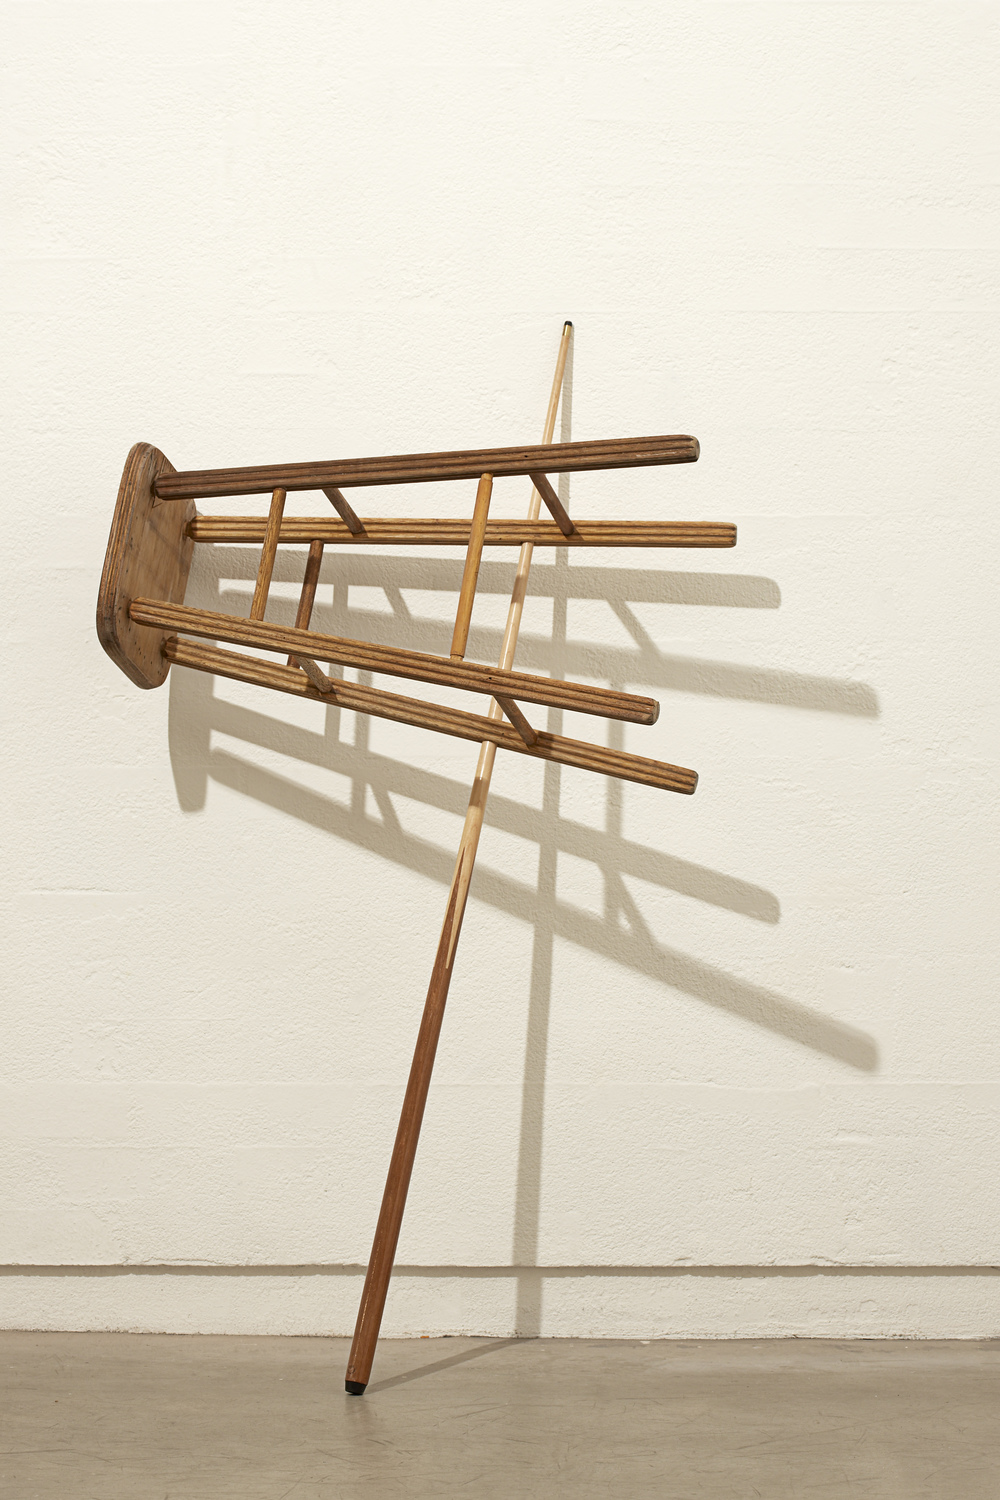 Cue/Stool, 2009 Cue and Stool 136 x 80 x 55 cm as exhibited